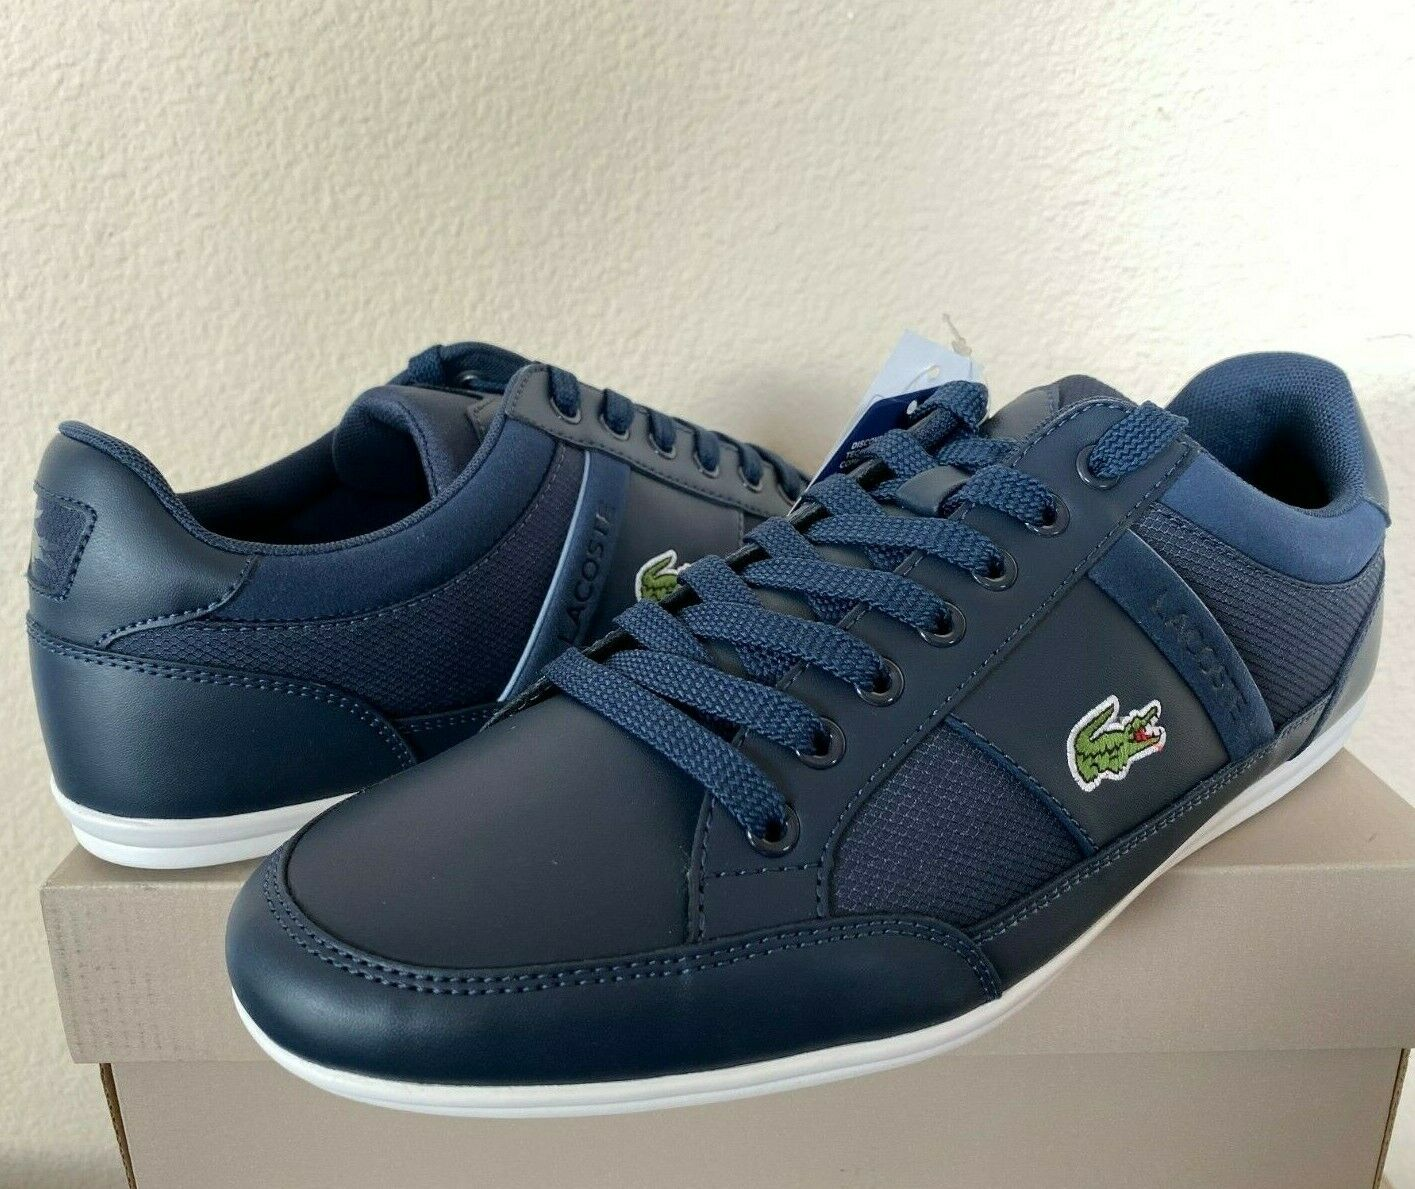 Lacoste Chaymon 317 1 Lace-up Trainers